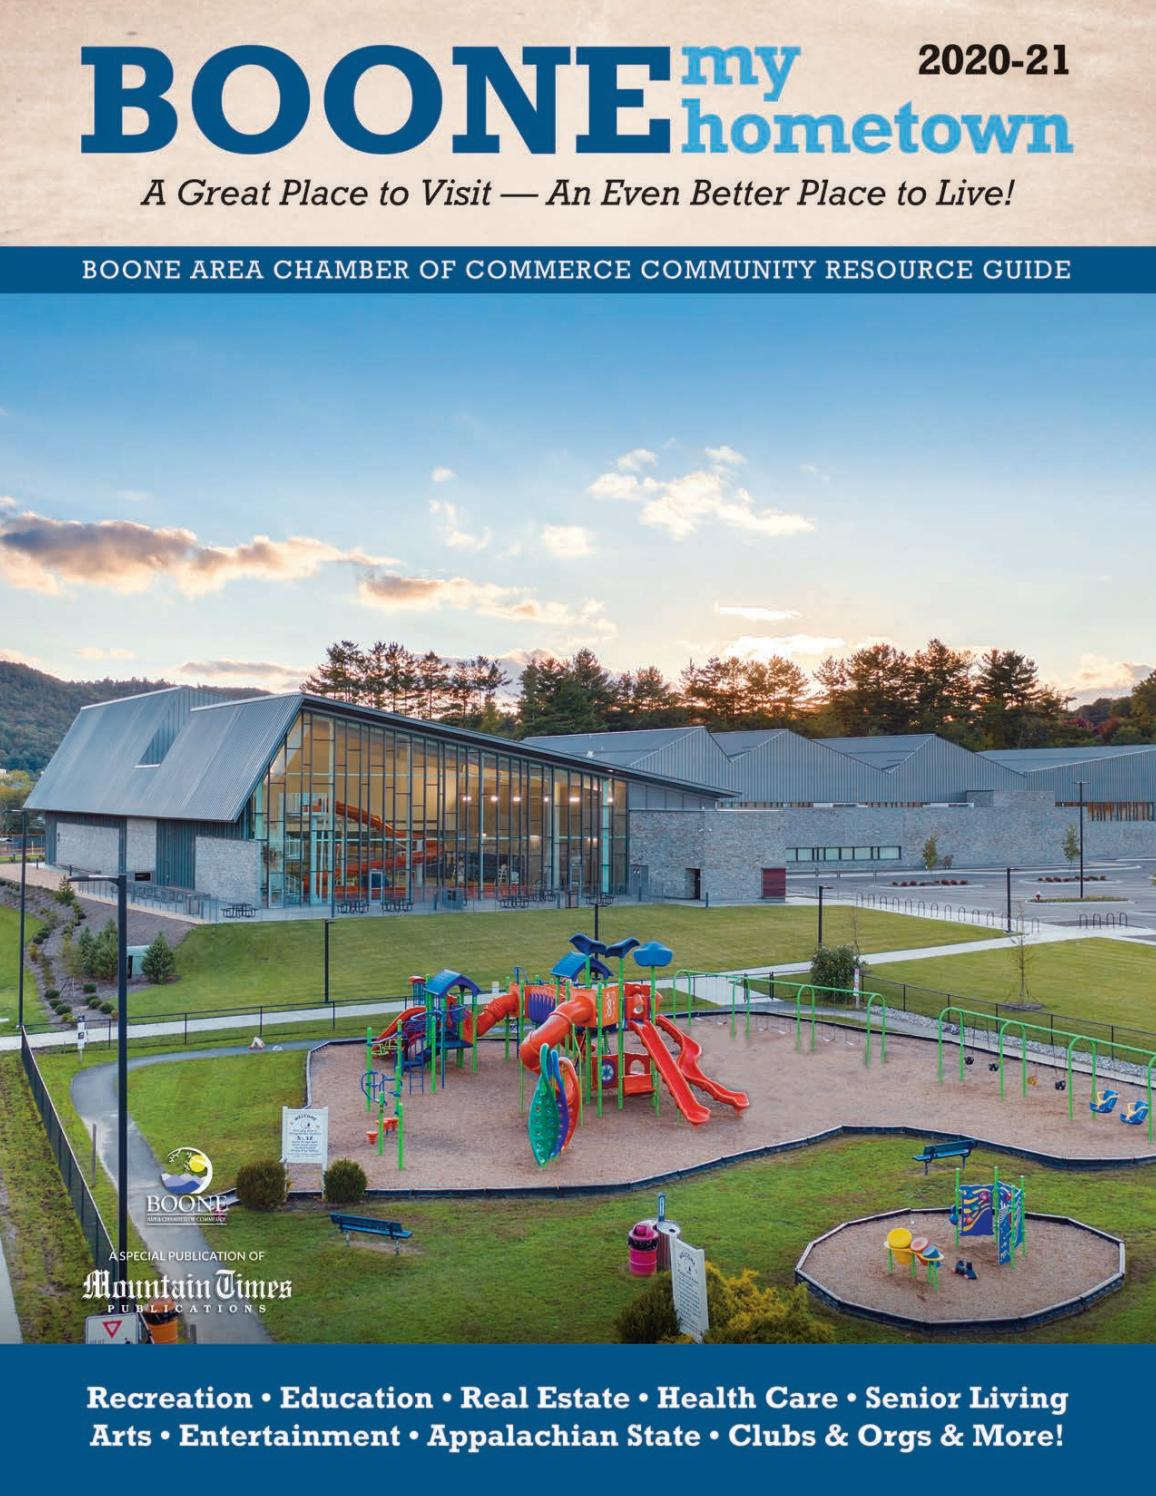 Boone My Hometown 2020 21 By Mountain Times Publications Issuu Search by location, salary, full/part time, commute options, and more. boone my hometown 2020 21 by mountain